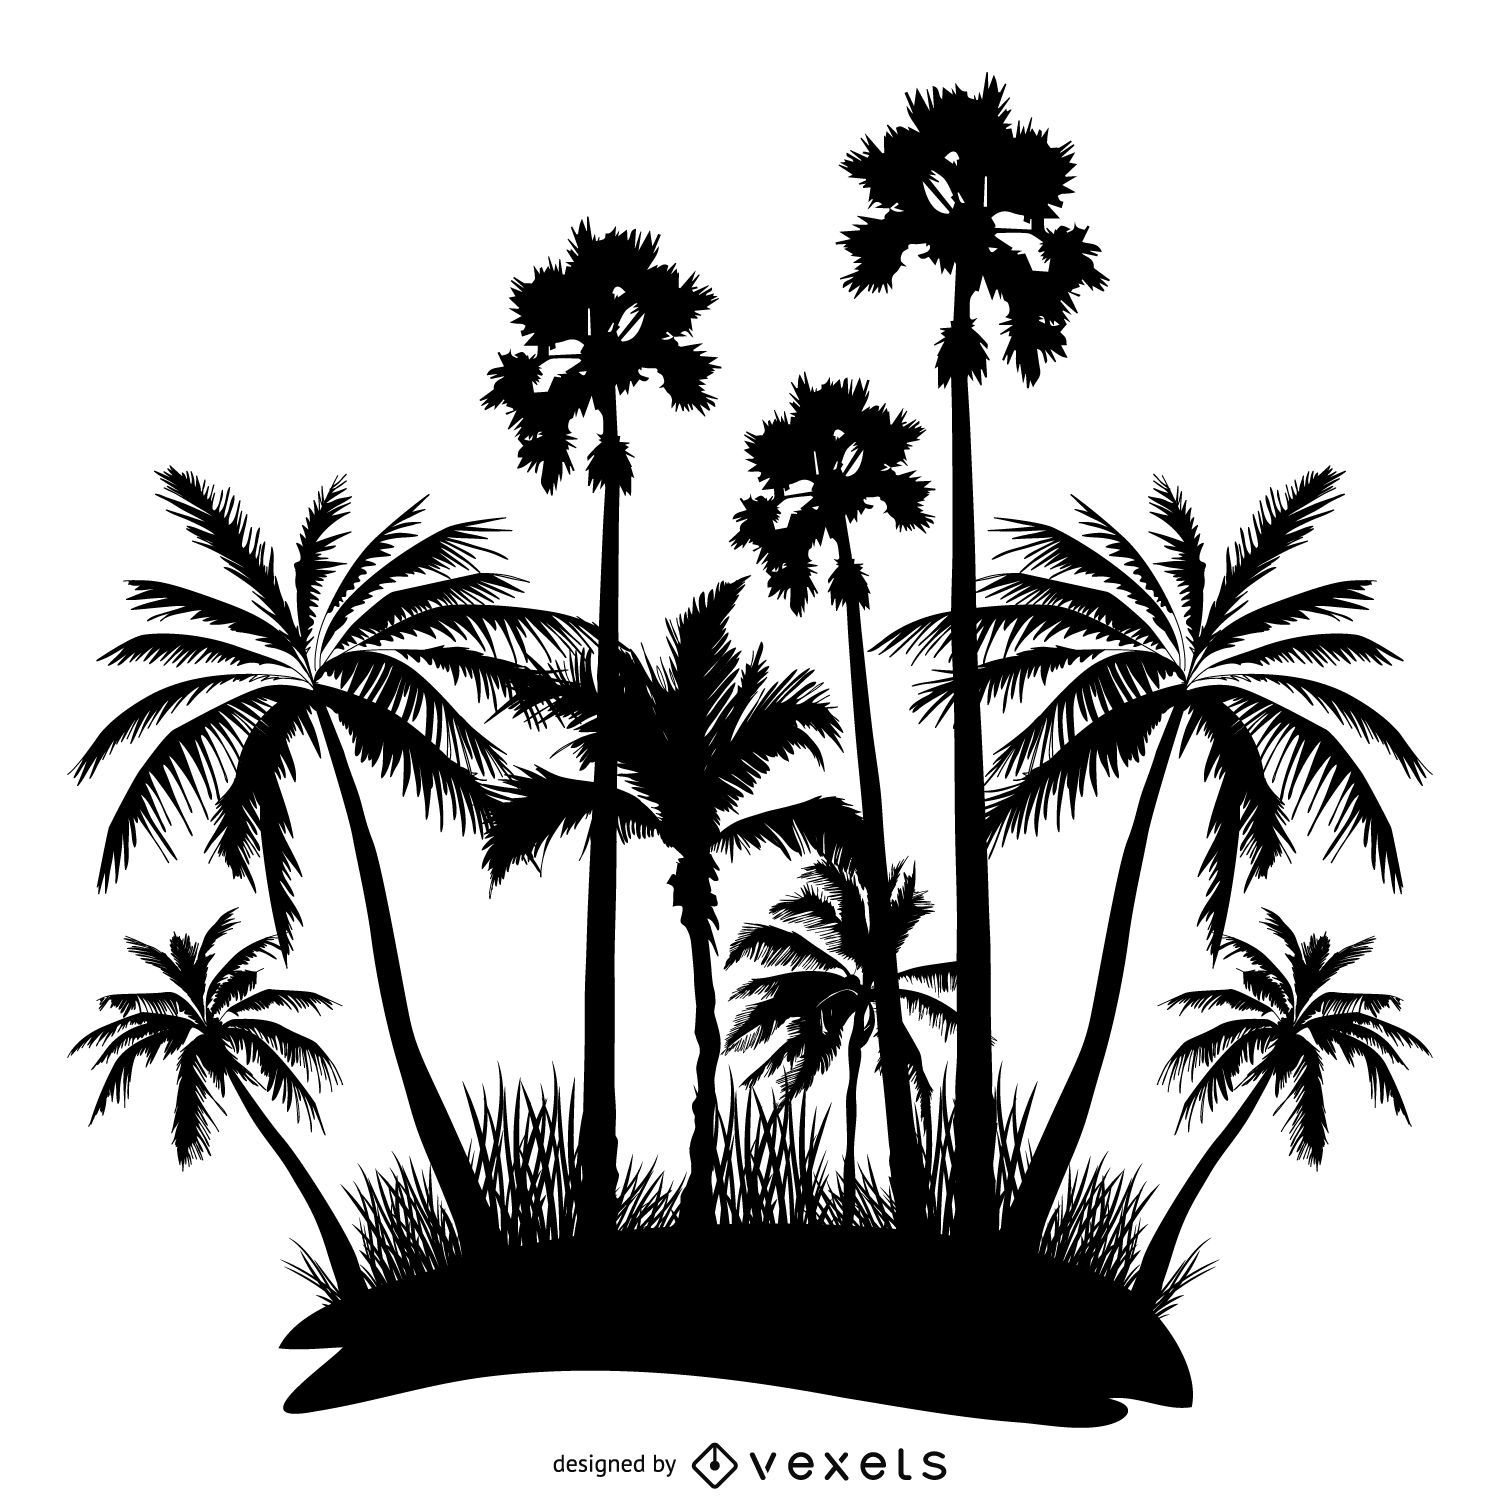 palm trees silhouette vector download rh vexels com palm tree silhouette vector free download palm tree leaf silhouette vector